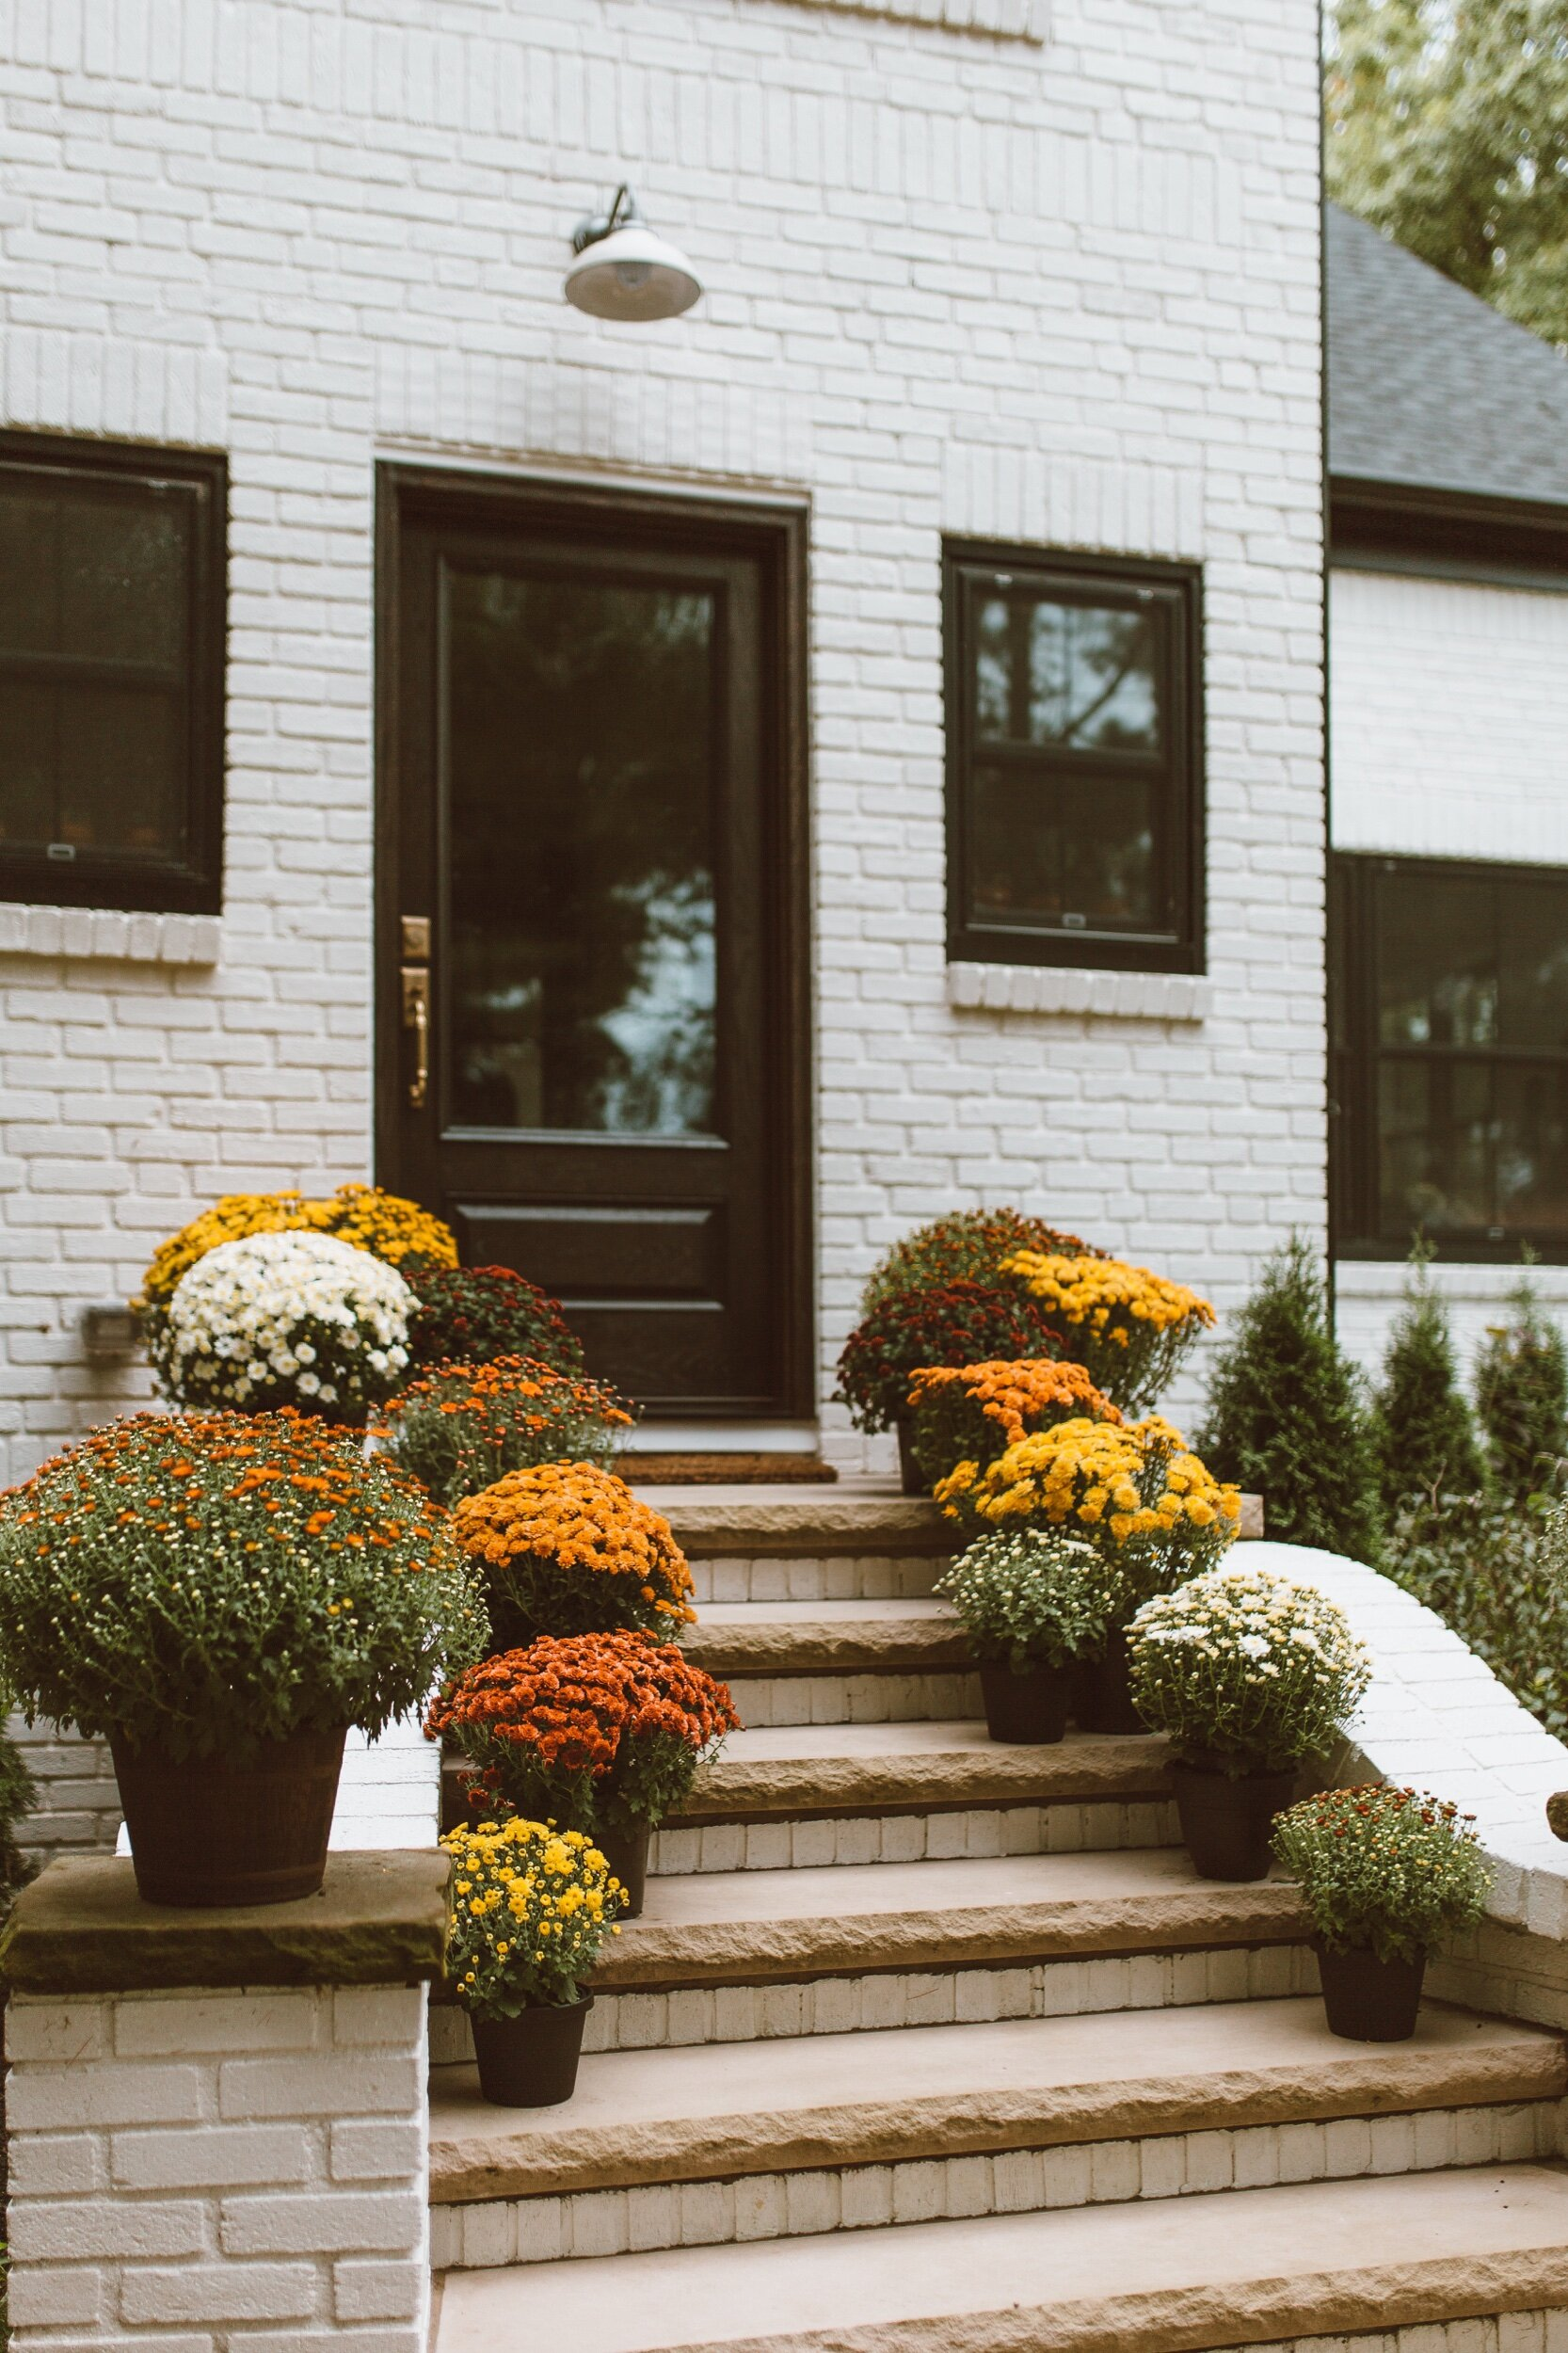 forthehome-how-to-care-for-fall-mums-00.jpeg